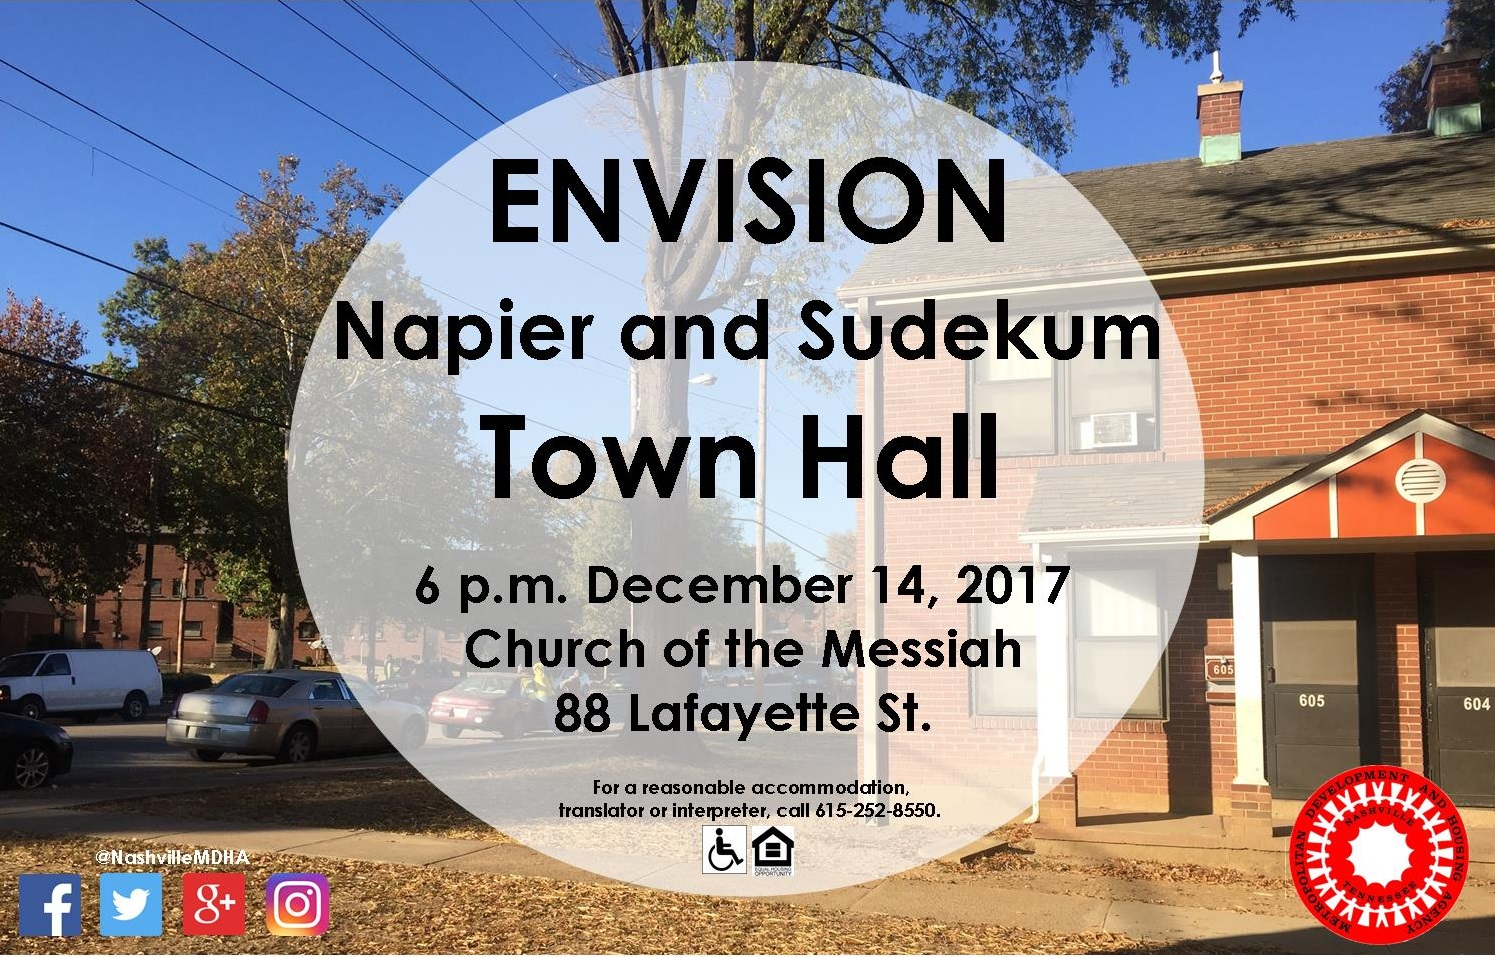 ens-town-hall-flyer-12142017-cropped